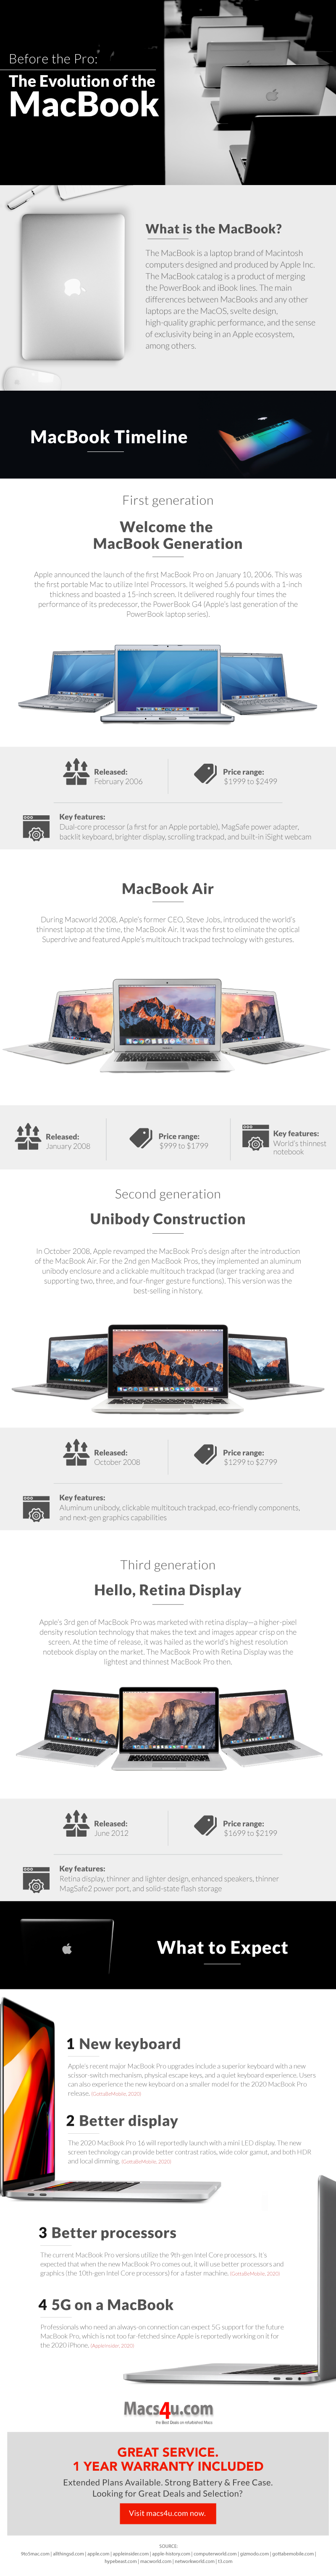 before-the-pro-the-evolution-of-macbook-infographic